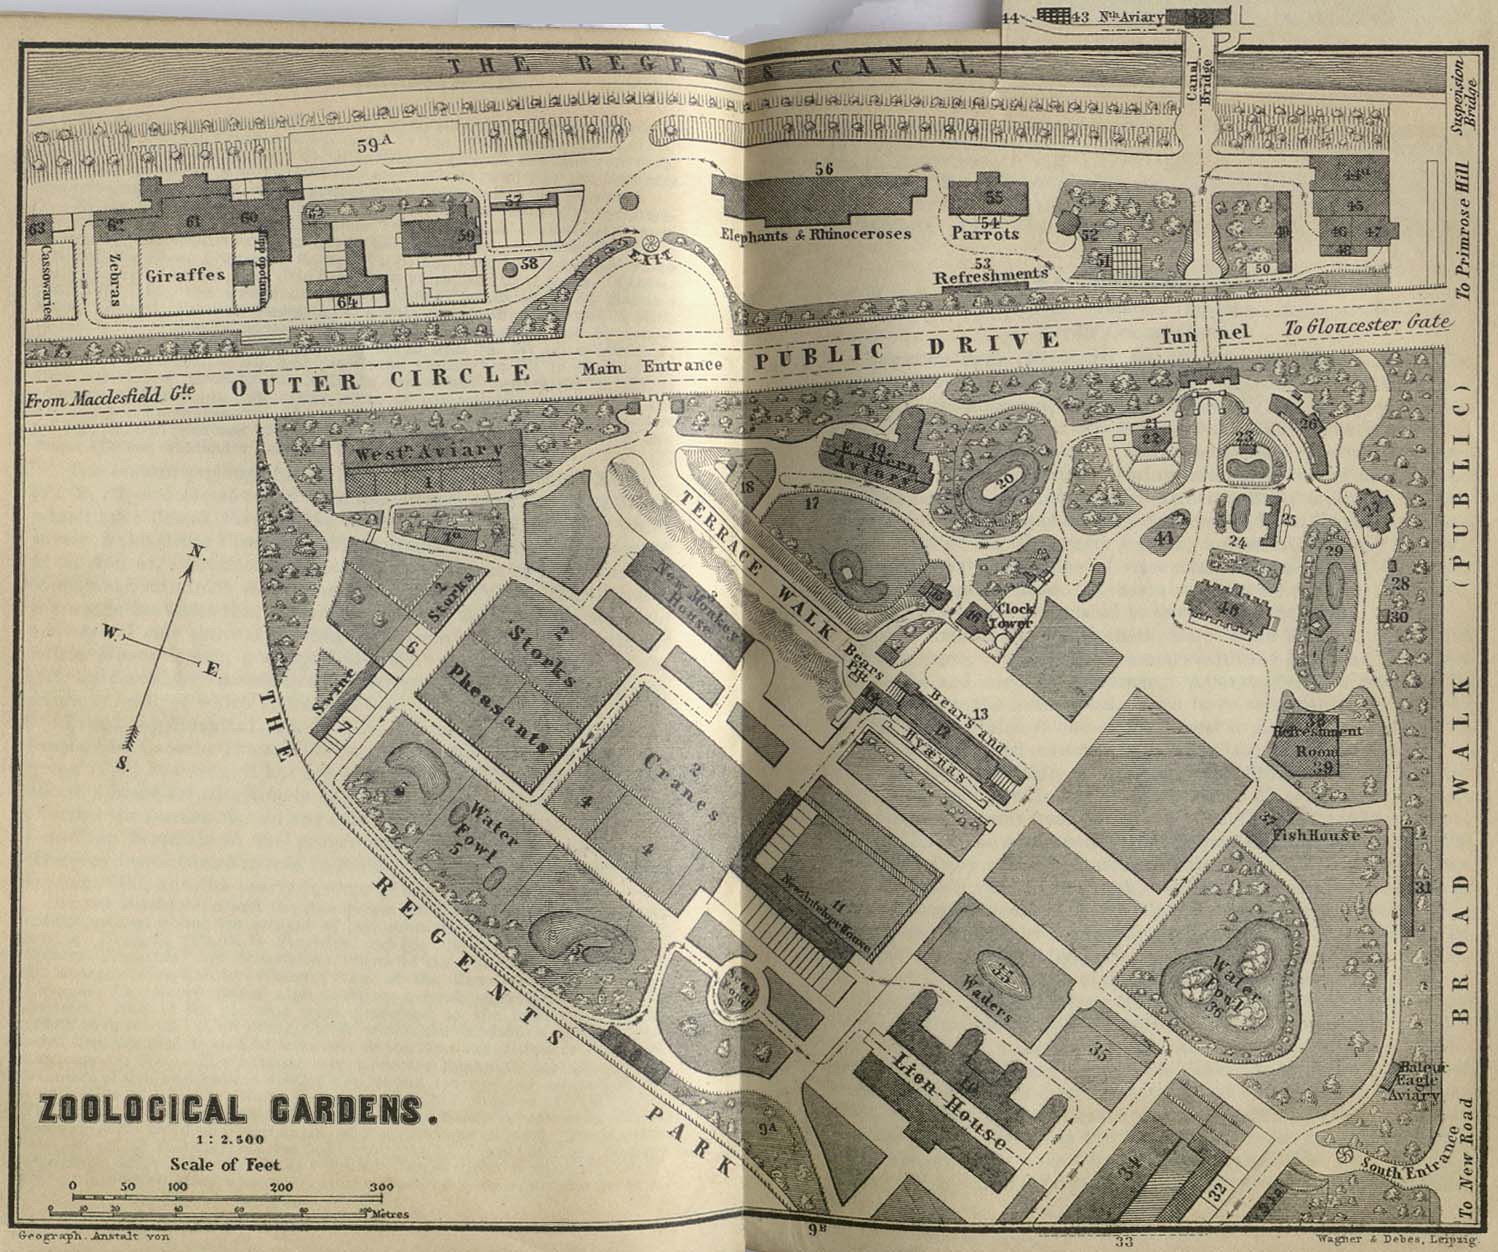 Zoological Gardens Map, London 1894